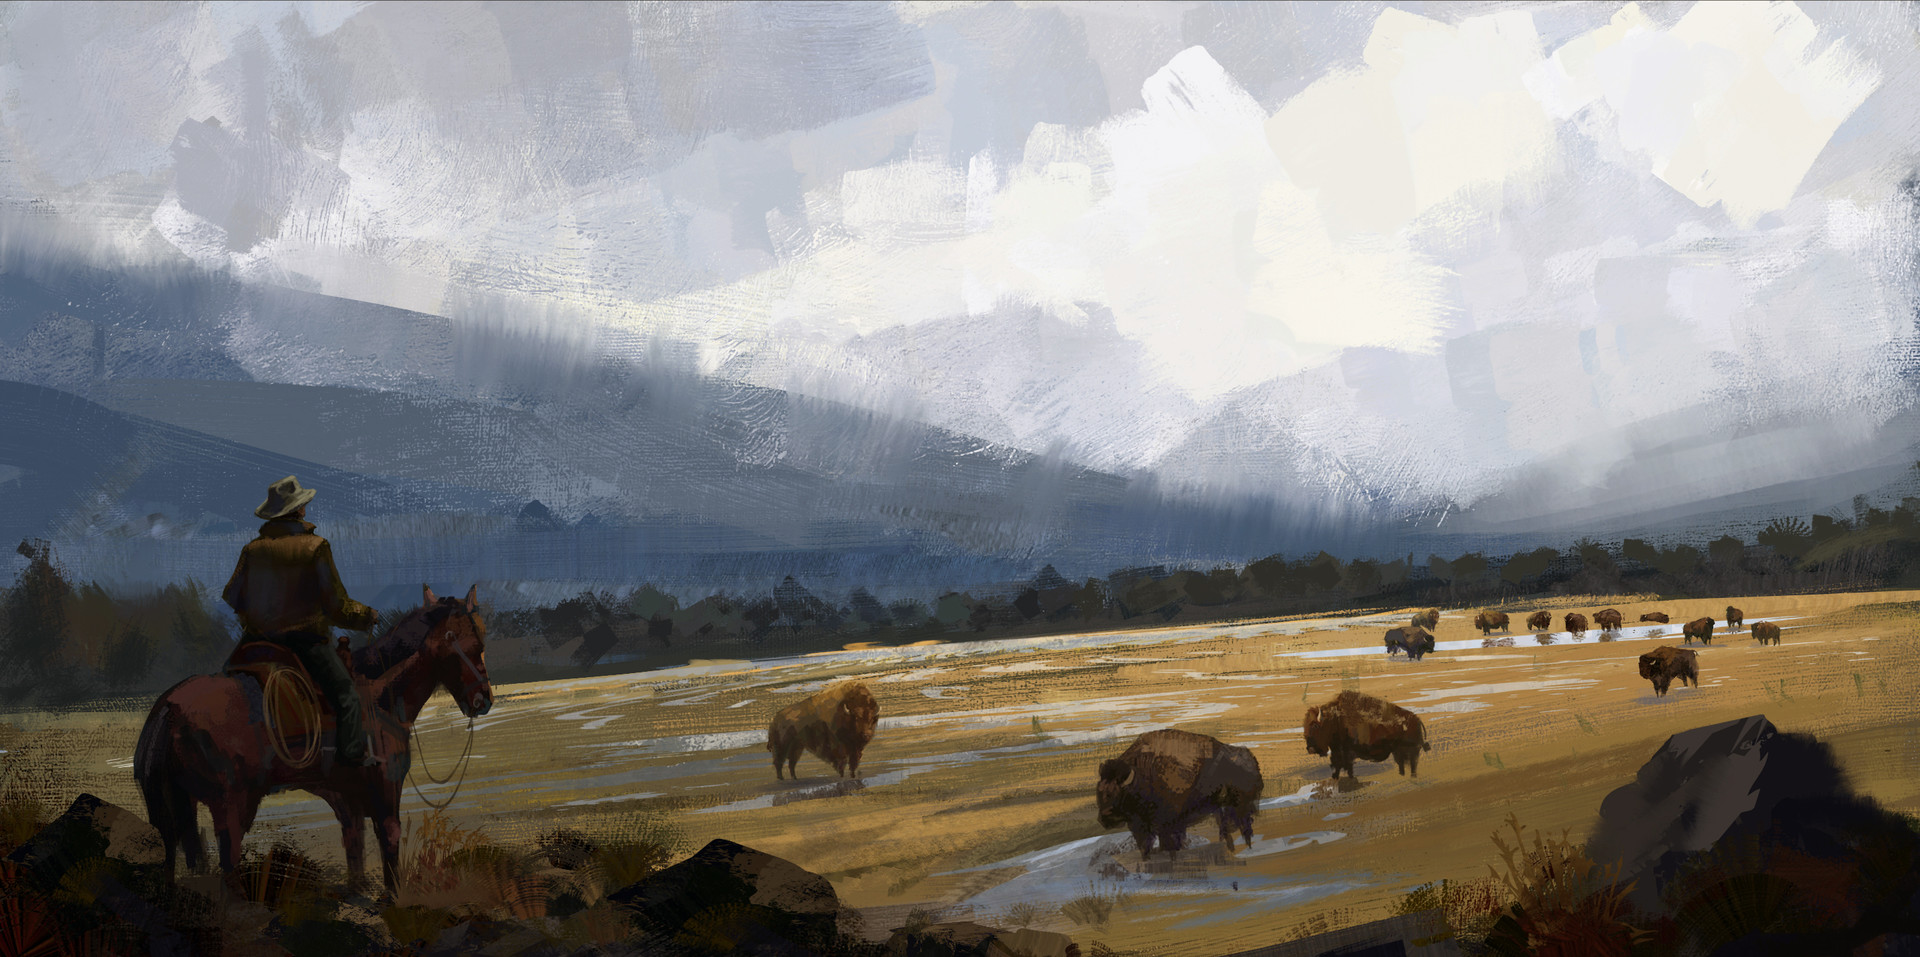 Jack dowell bison6 5